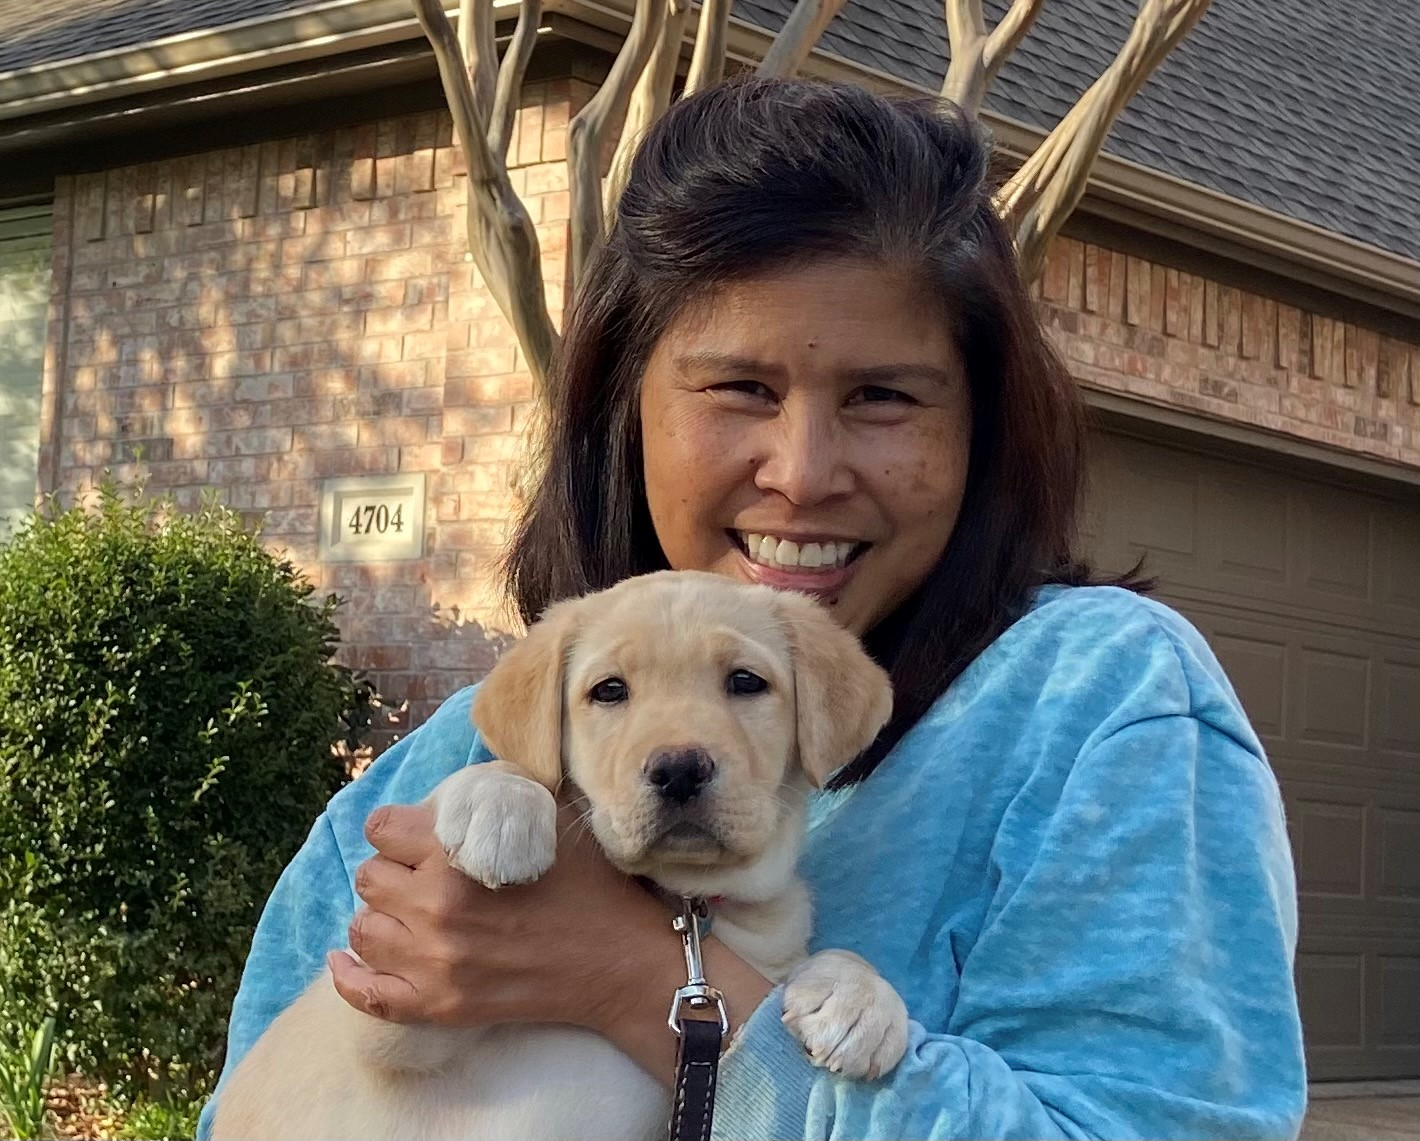 woman holding a yellow puppy